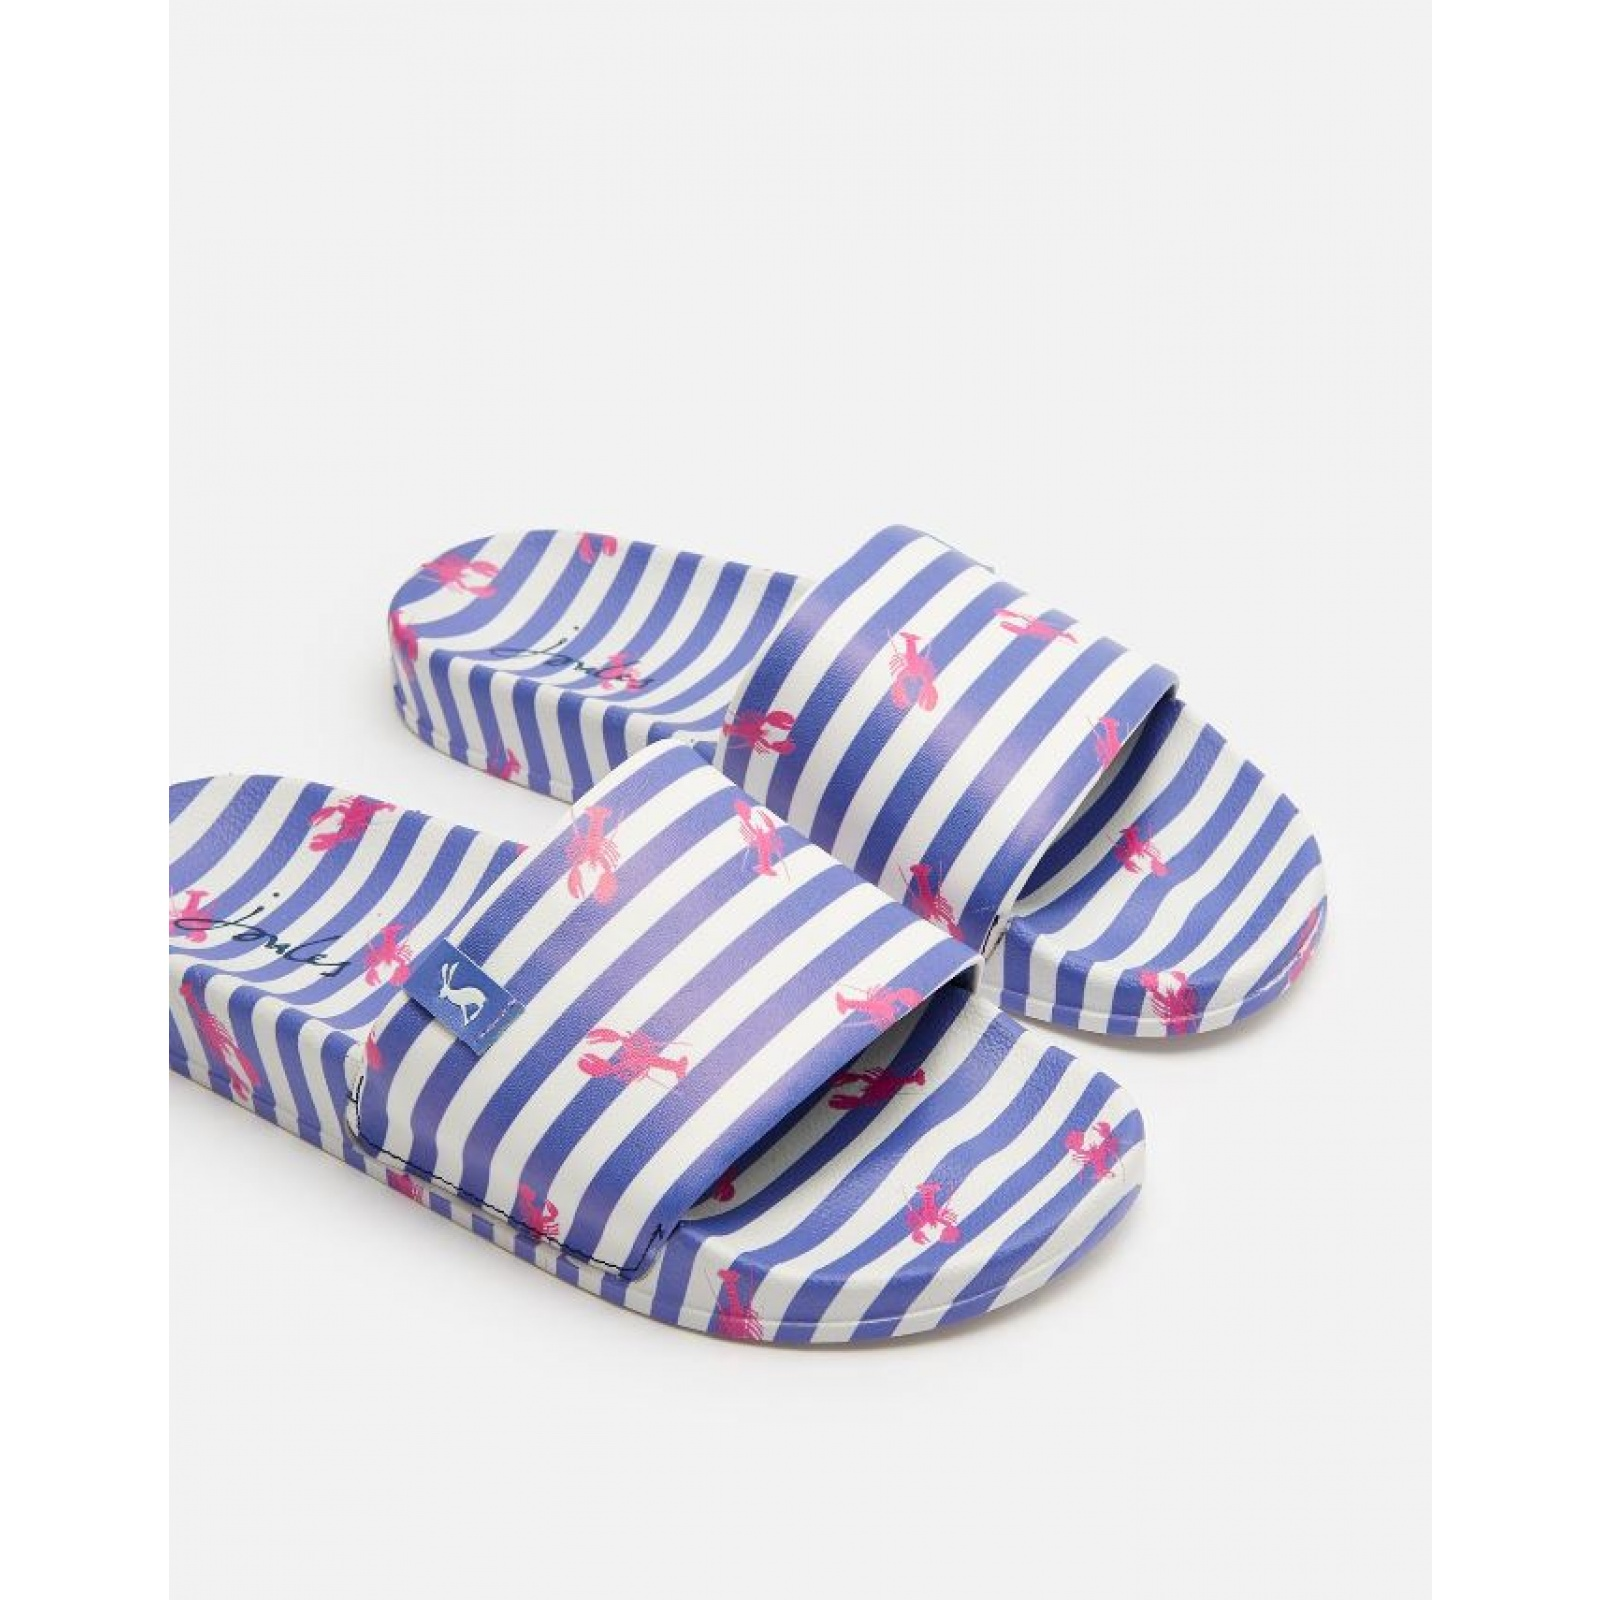 Joules-Poolside-PU-Sliders-Beach-Holiday-Shoes-SS19 miniature 8